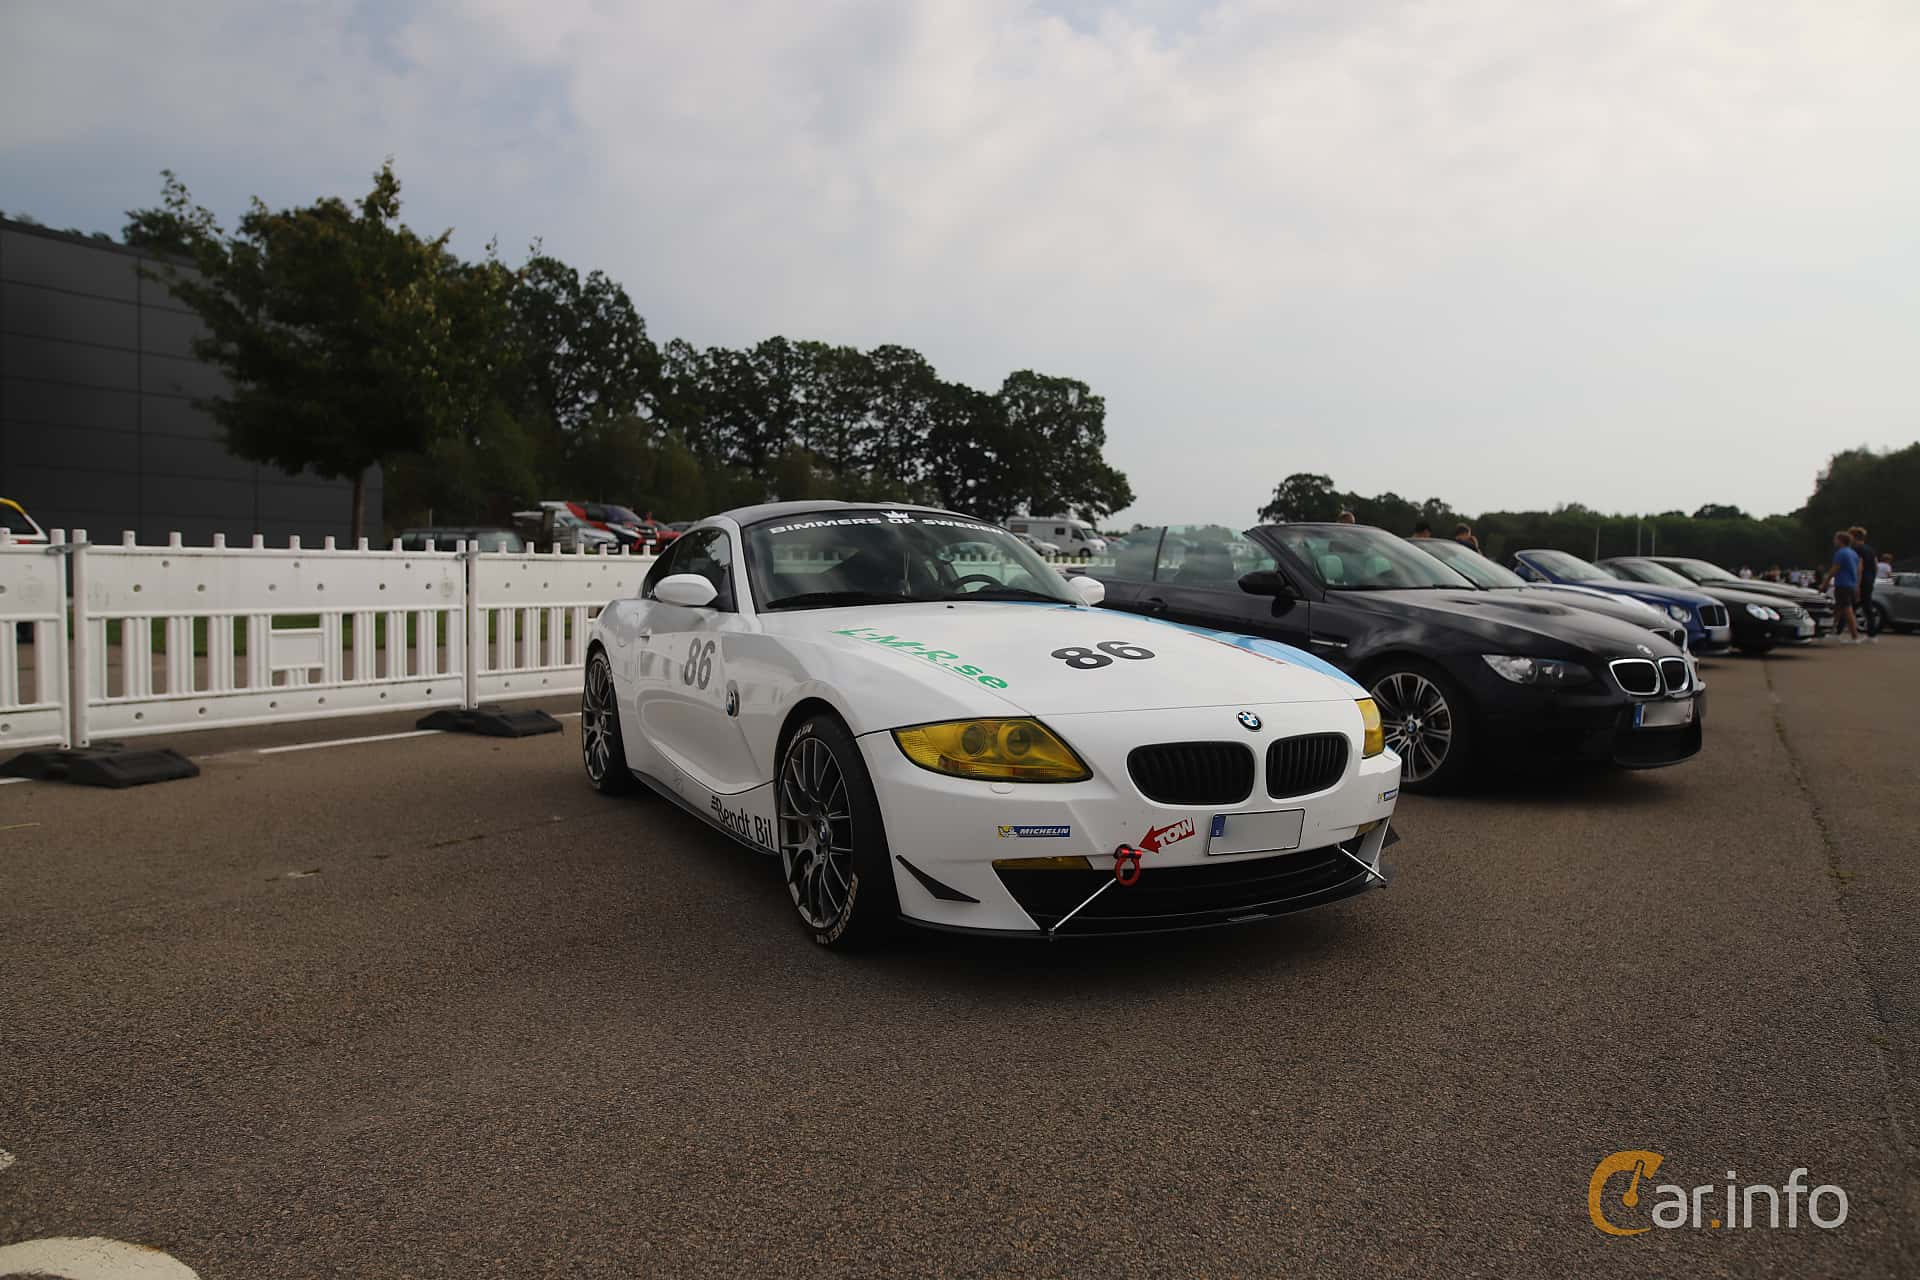 BMW Z4 3.0si Coupé  Manual, 265hp, 2007 at Autoropa Racing day Knutstorp 2019